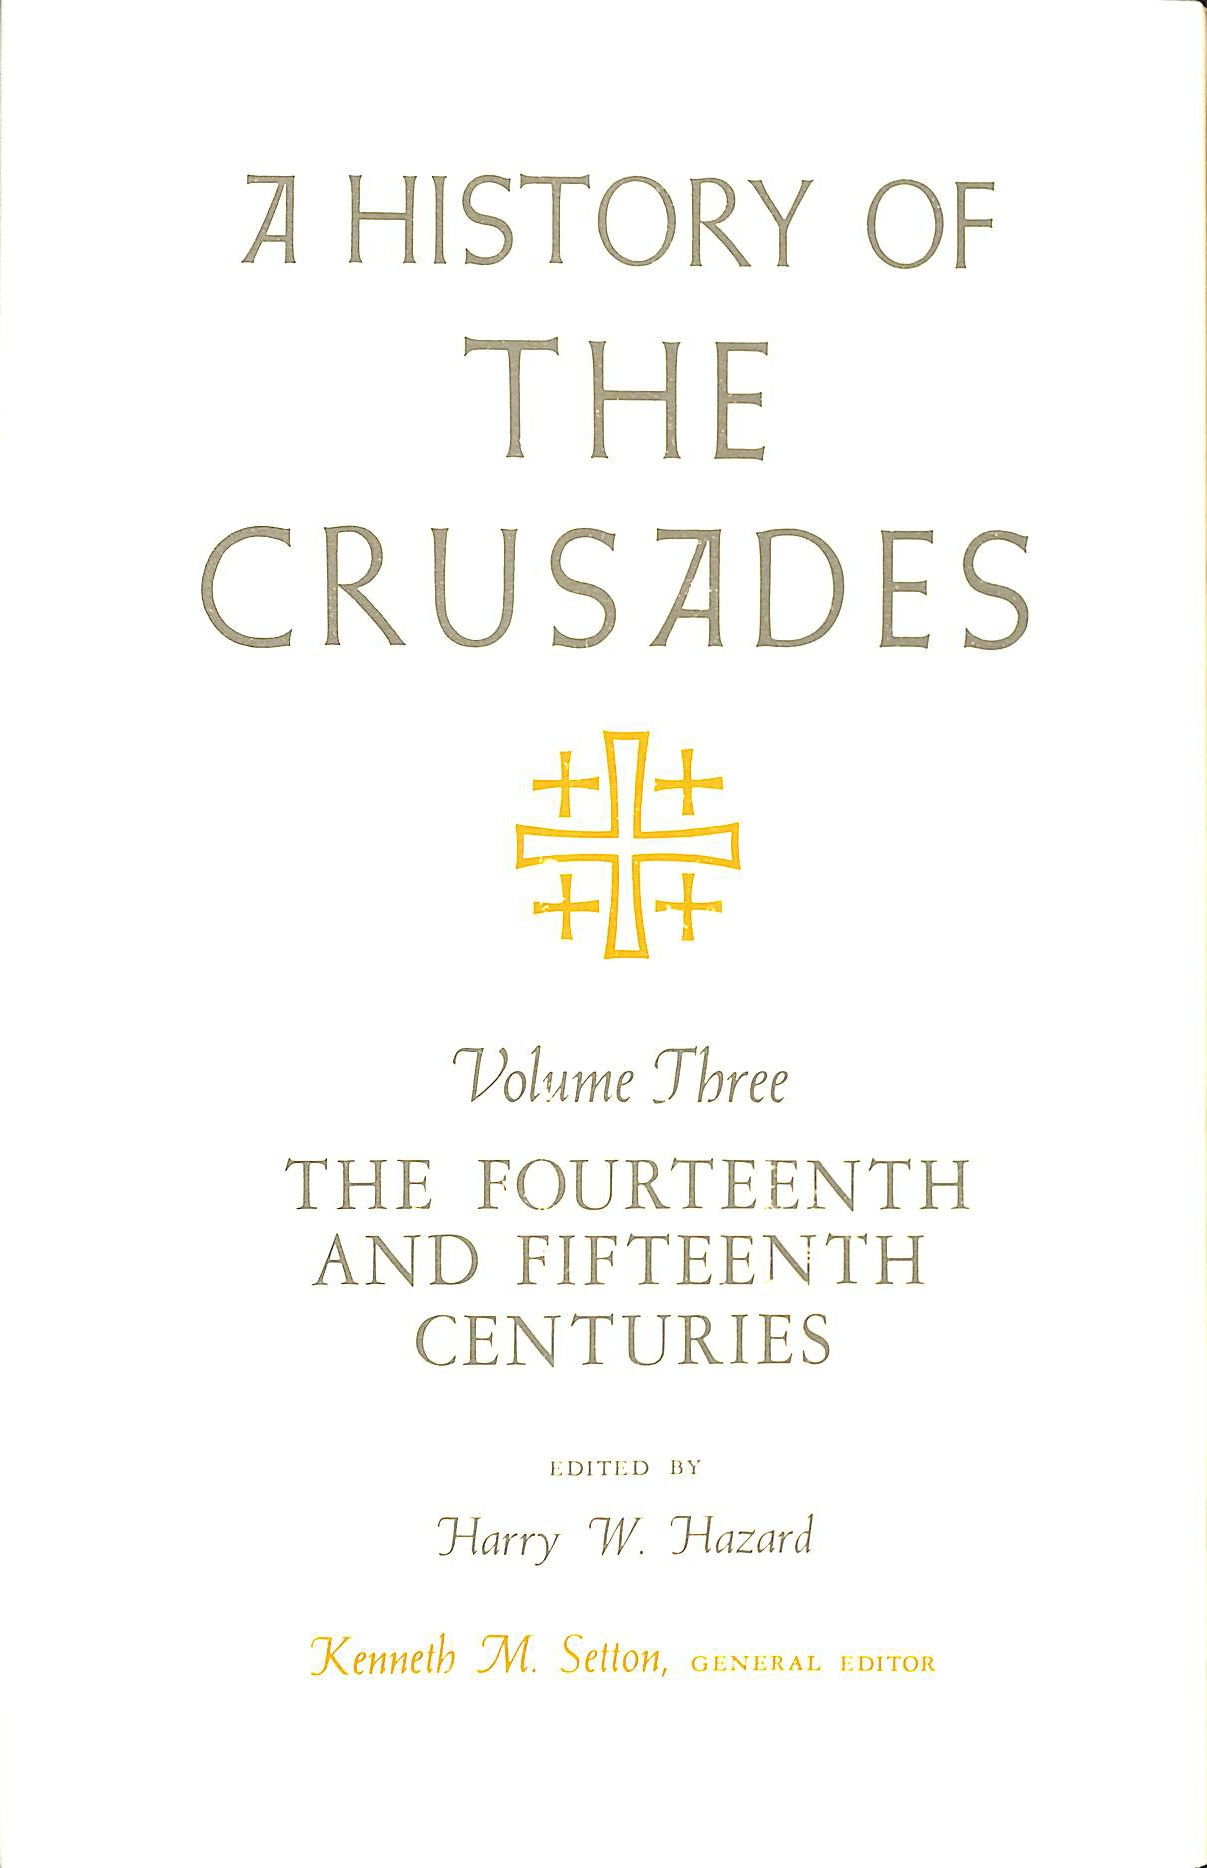 Image for A History of the Crusades. Volume Three. The Fourteenth and Fifteenth Centuries.